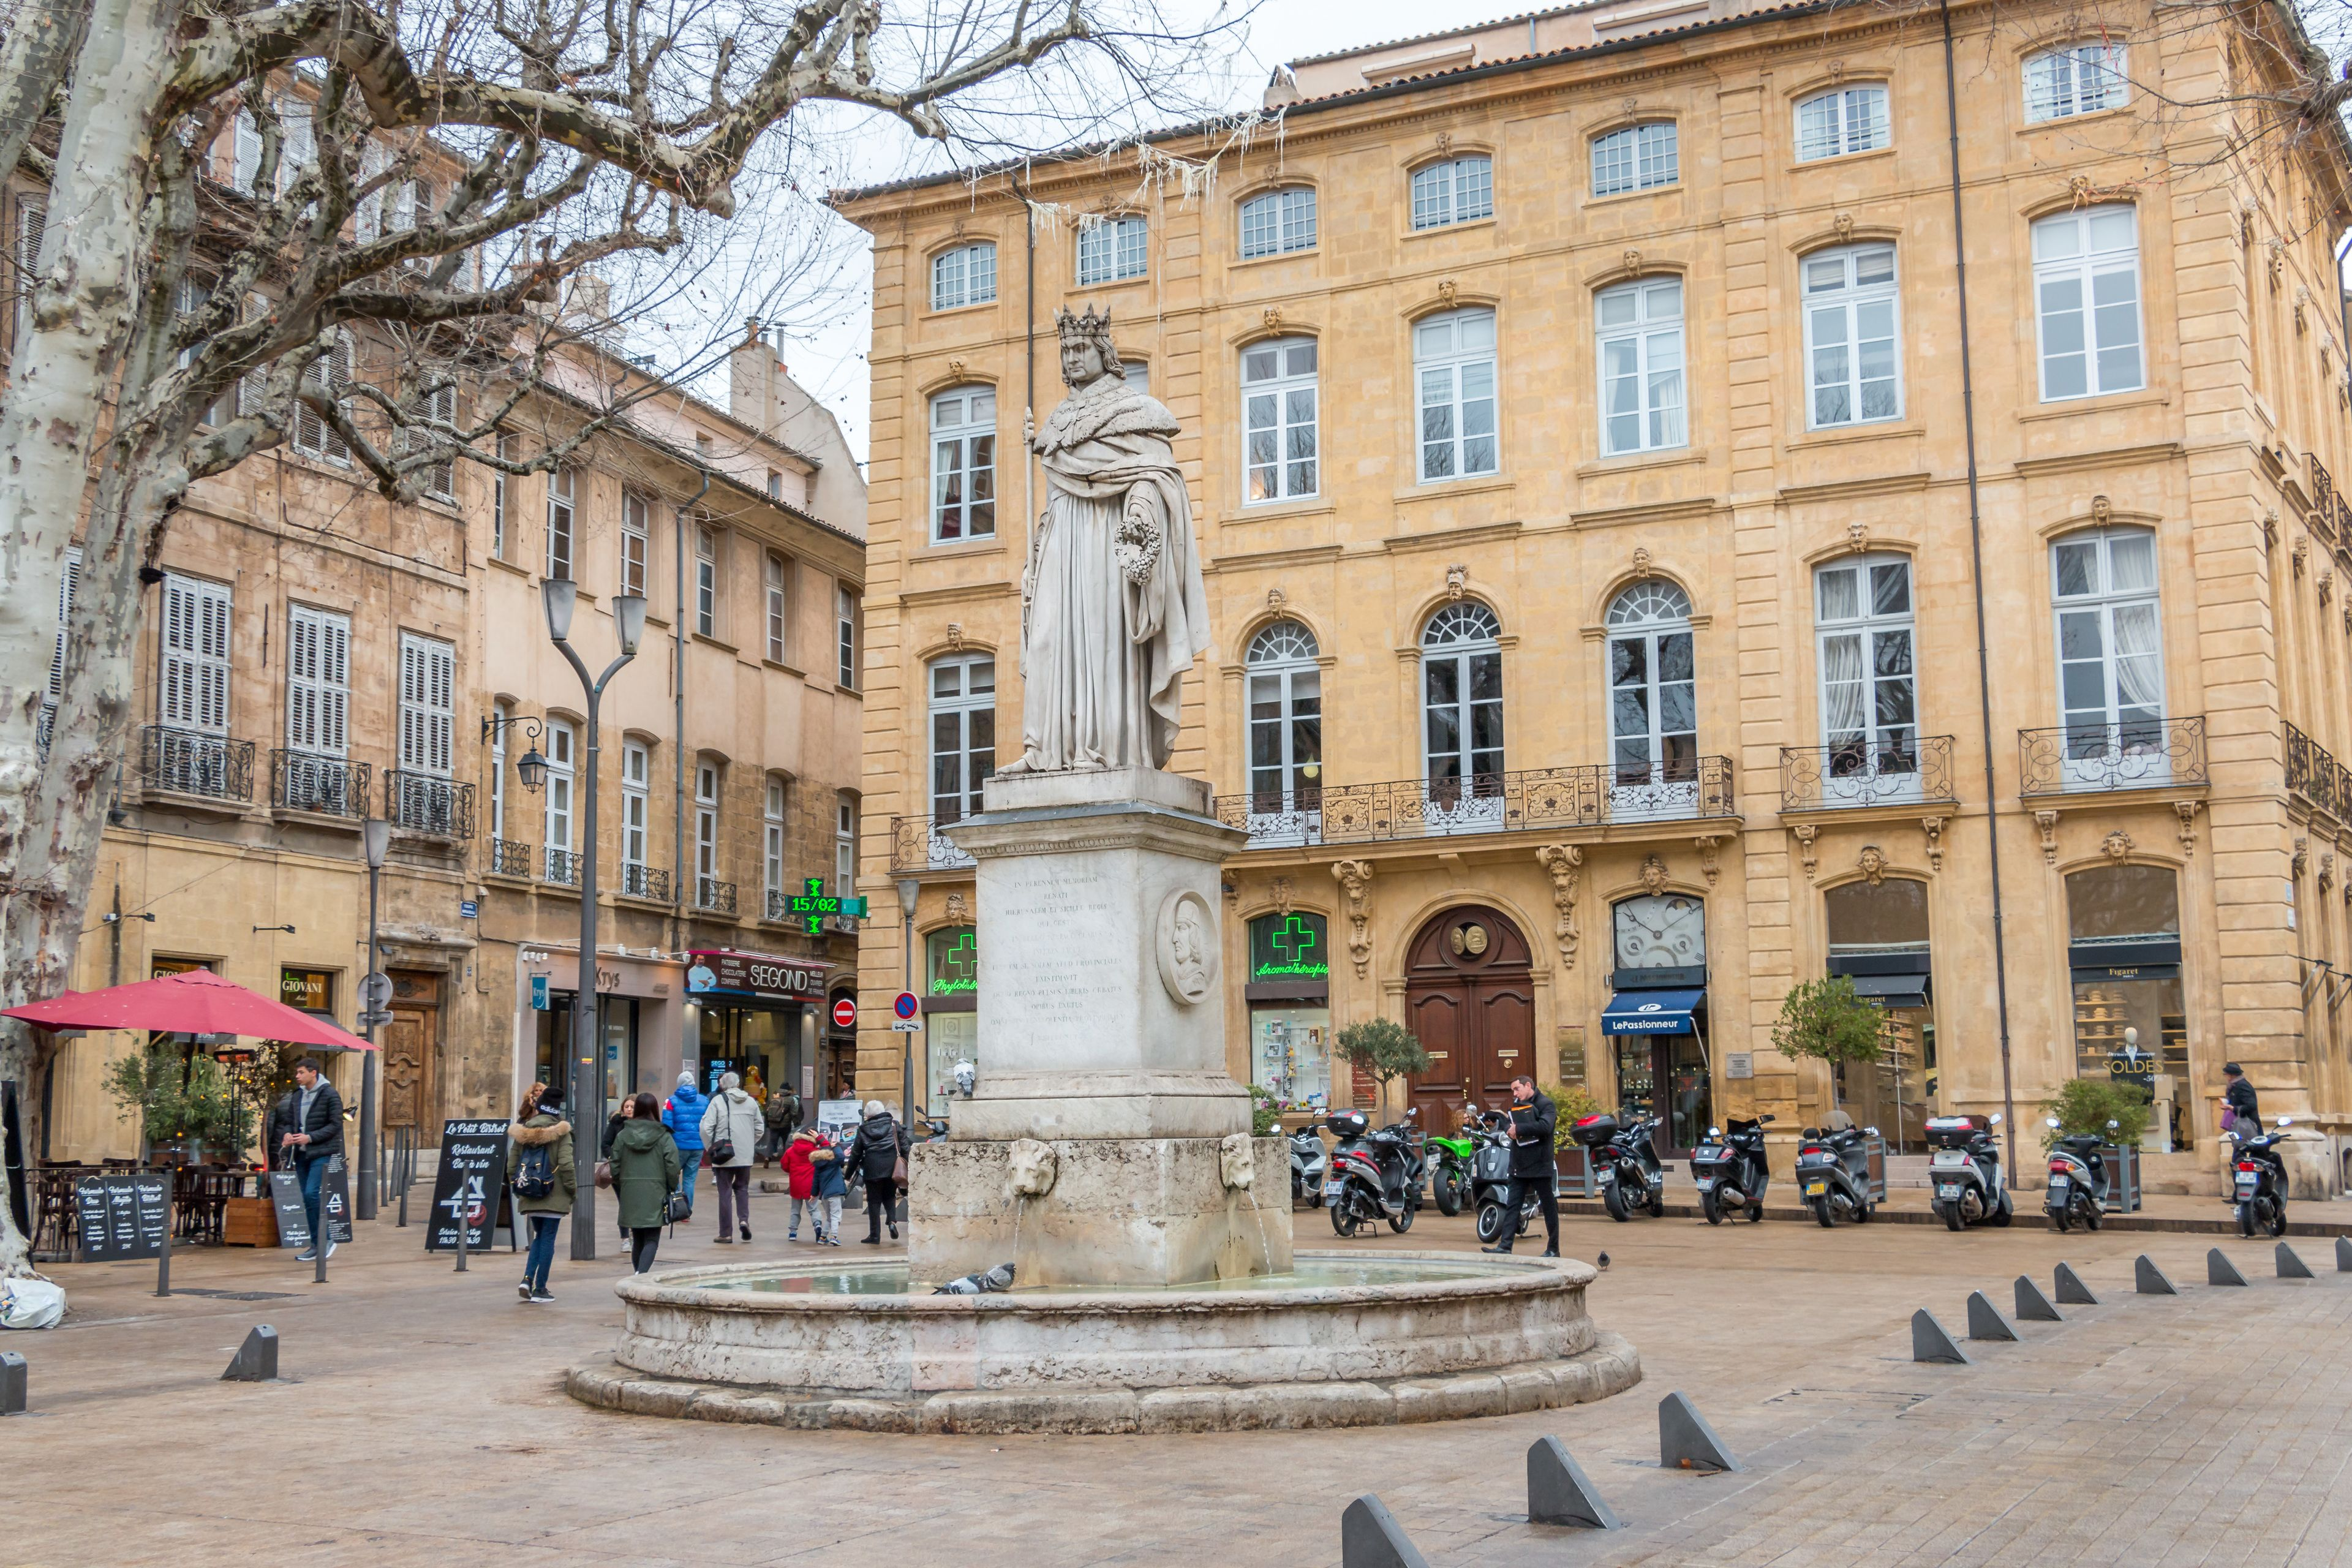 A Full Day in Aix-en-Provence, Cassis & Marseille